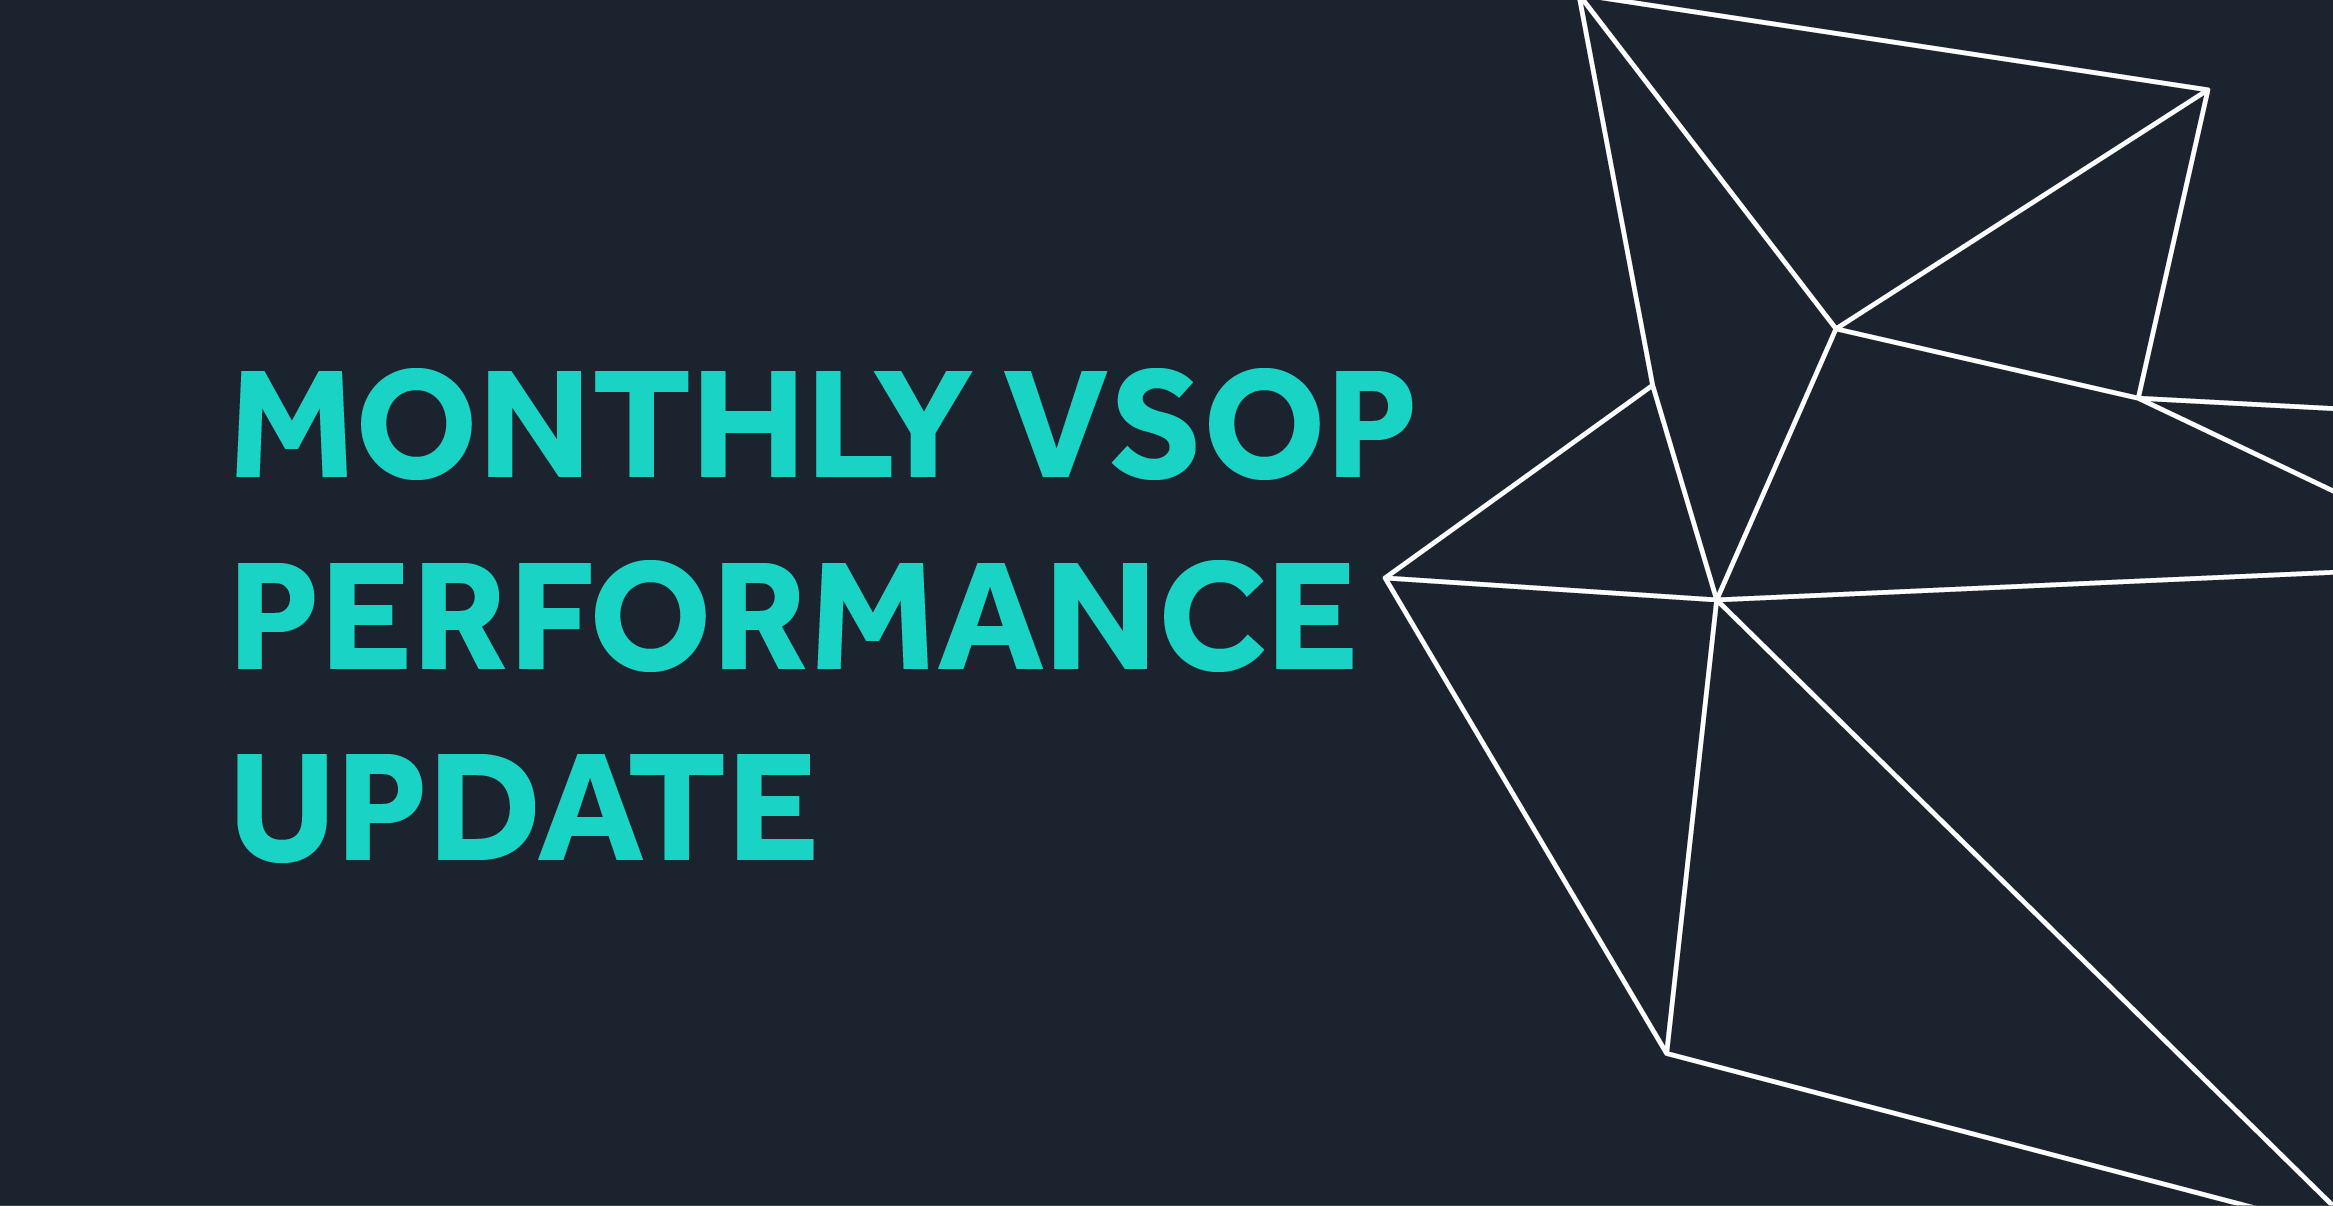 Monthly VSOP Performance Update